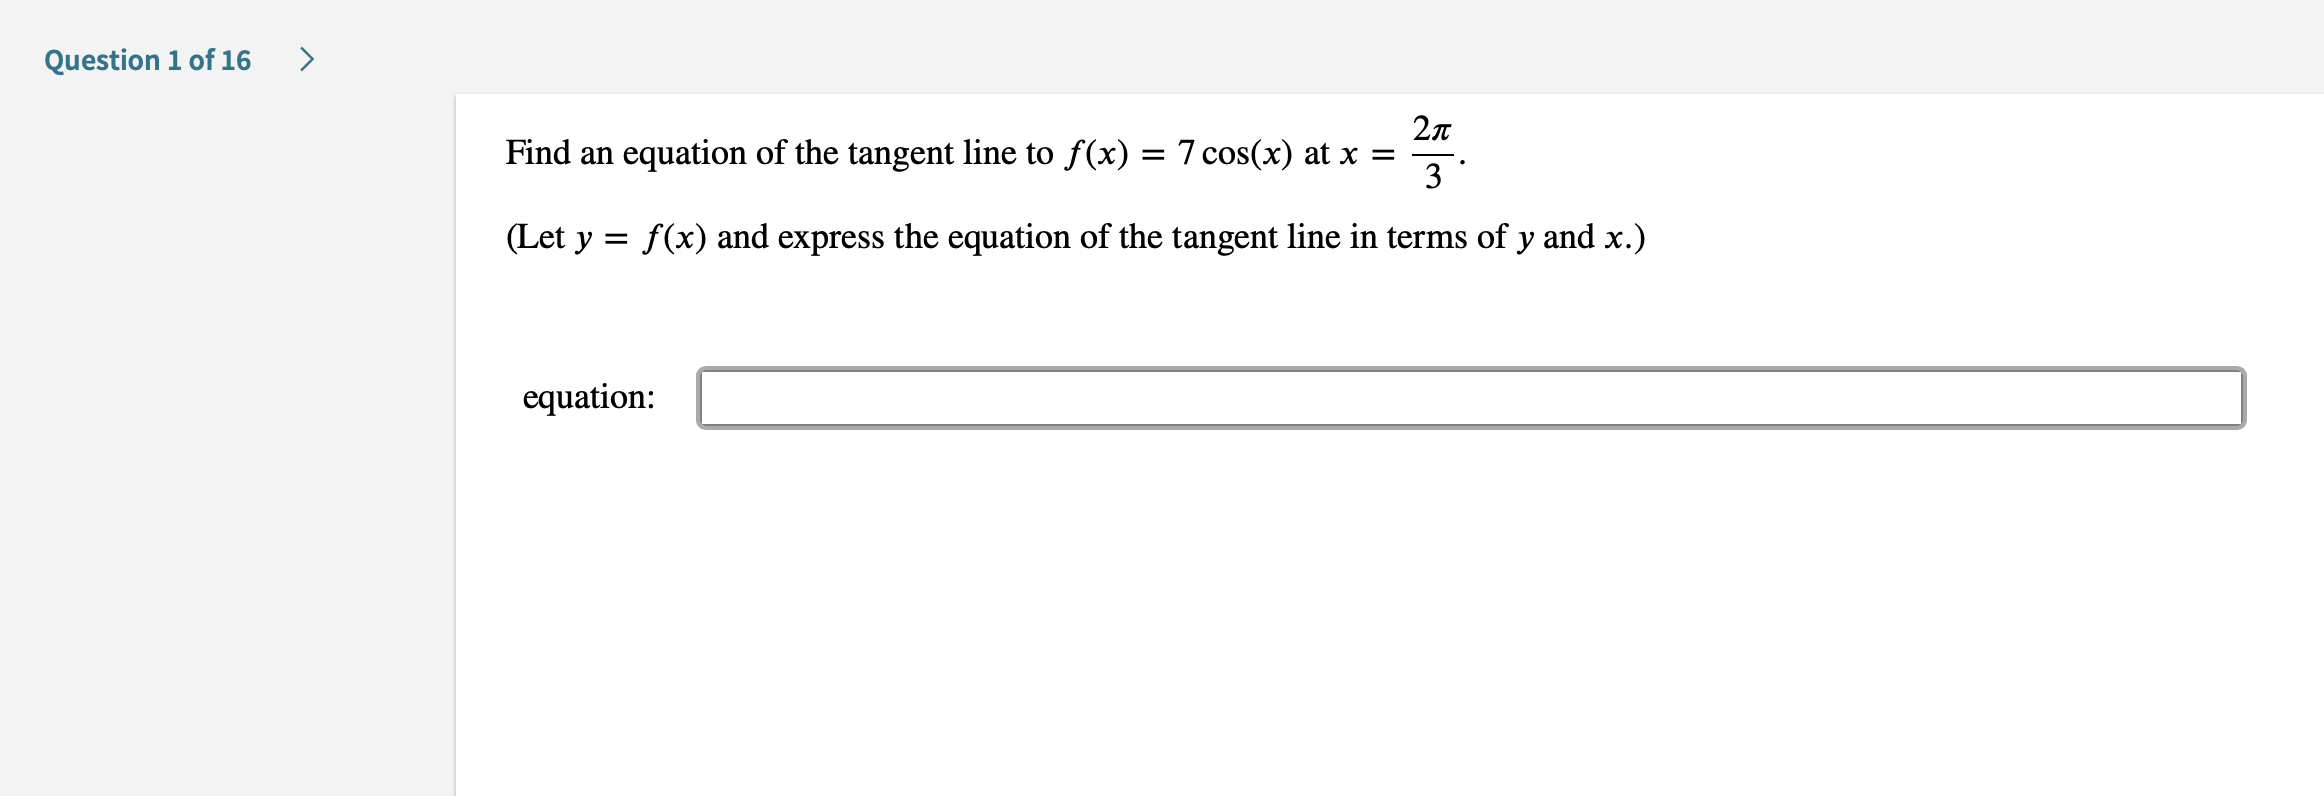 > Question 1 of 16 27T Find an equation of the tangent line to f(x) = 7 cos(x) at x = 3 (Let y f(x) and express the equation of the tangent line in terms of y and x.) equation